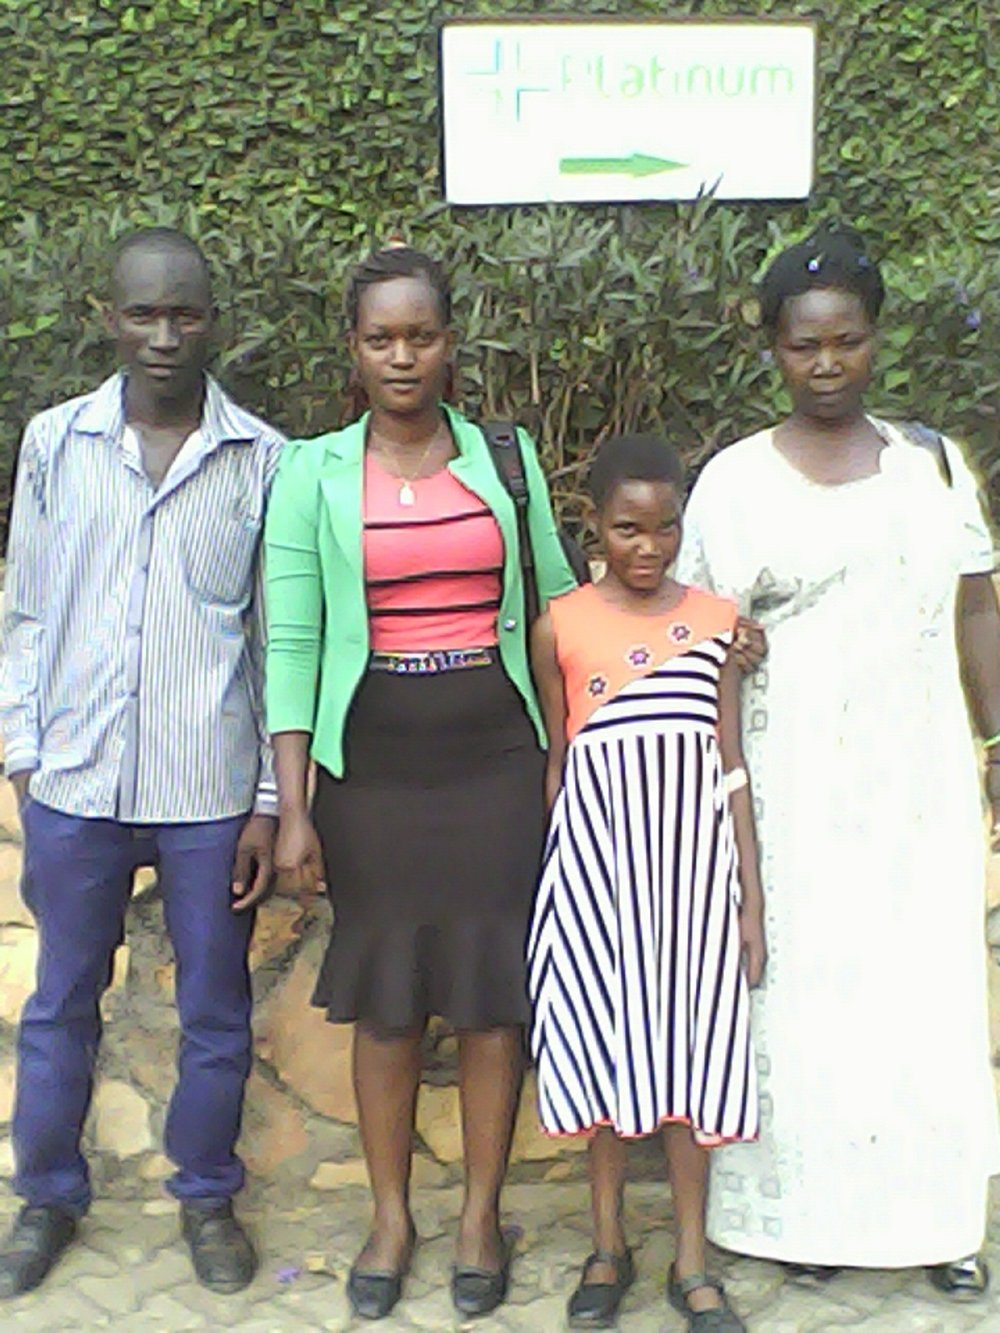 Left to Right: Posiano - a Tusubira beneficiary needing corrective surgery, Prossy - Tusubira alumni in nursing helping to lead this medical project, Daphne - a Tusubira scholarship recipient also needing corrective surgery, and Daphne's aunt.